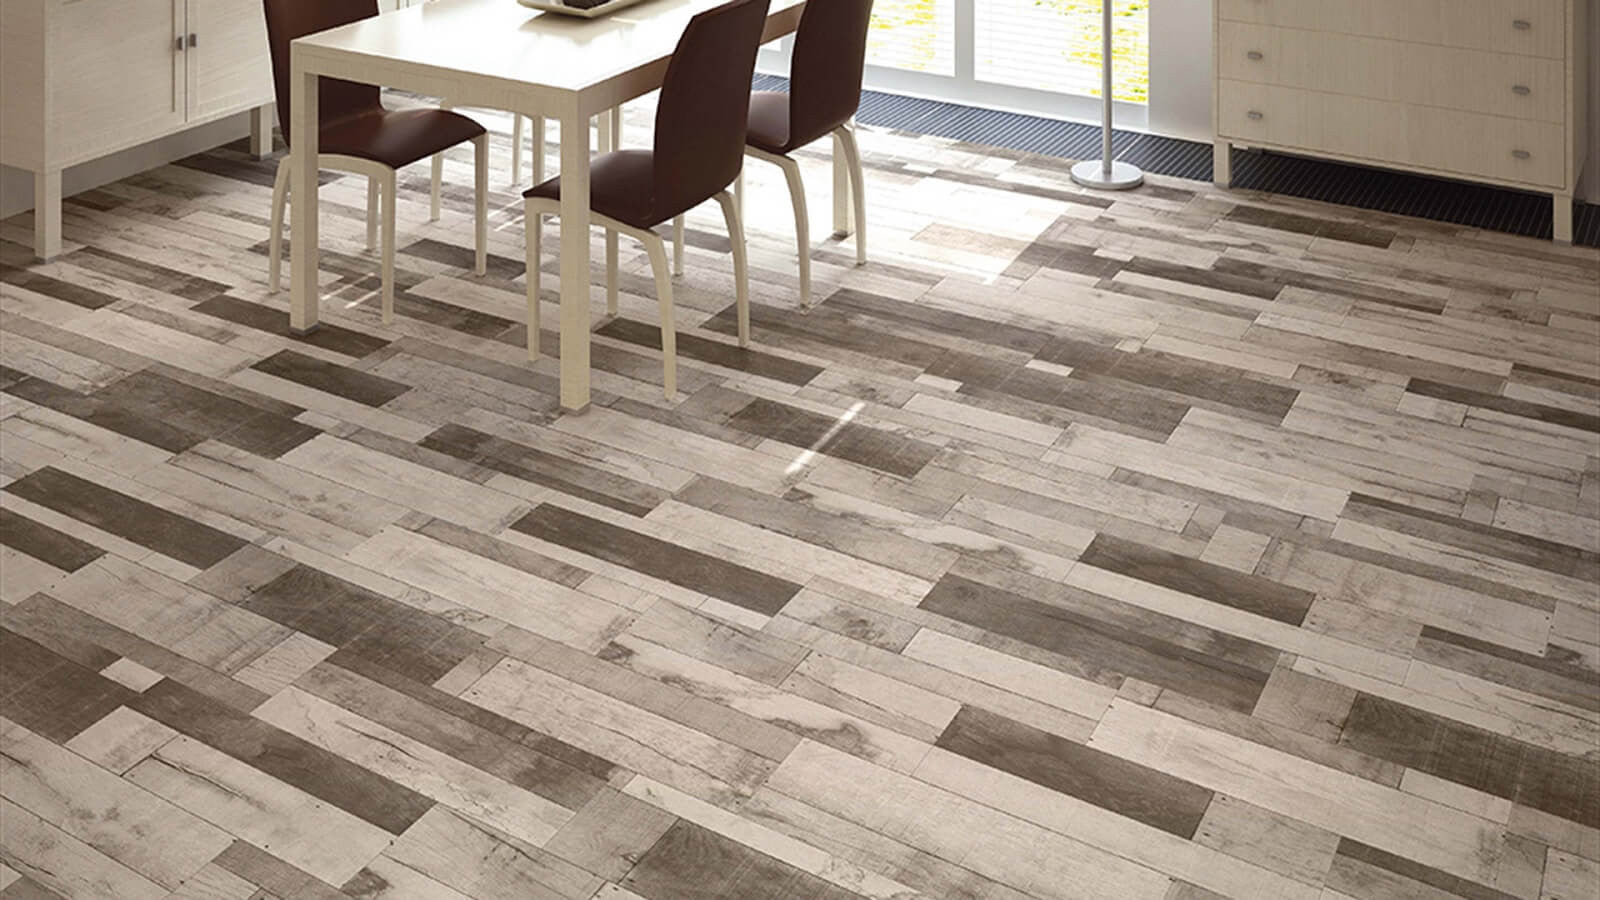 ... Madera Grey Wood Effect Tiles On Kitchen Floor With Table And Chairs ...